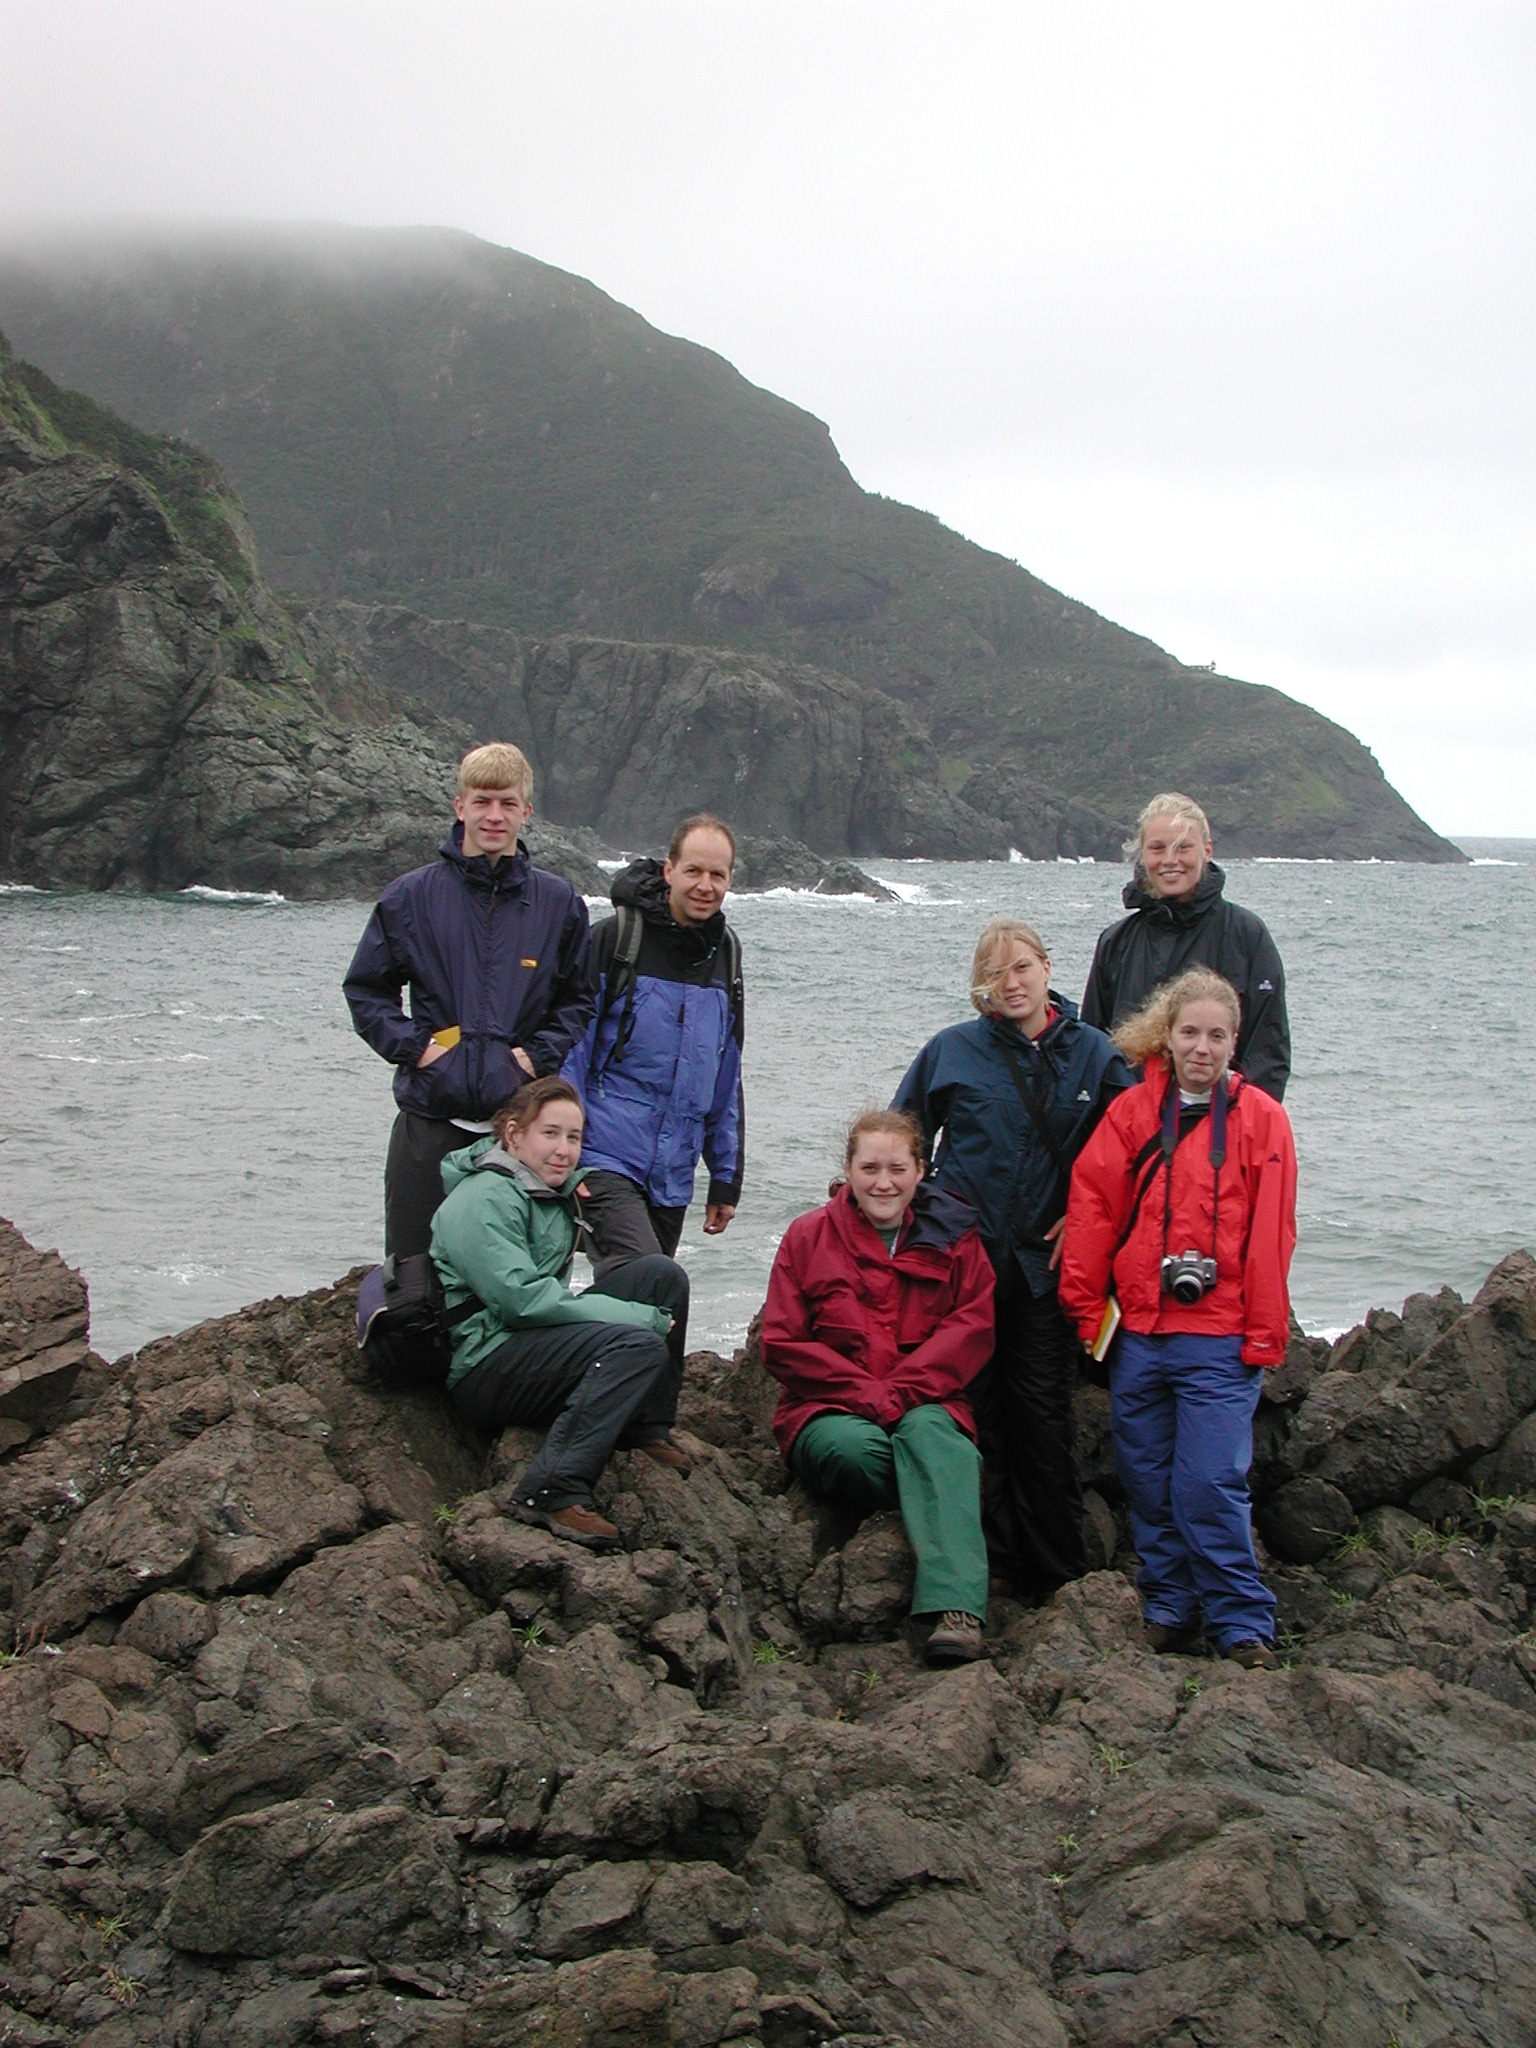 dikes are younger than surrounding layer